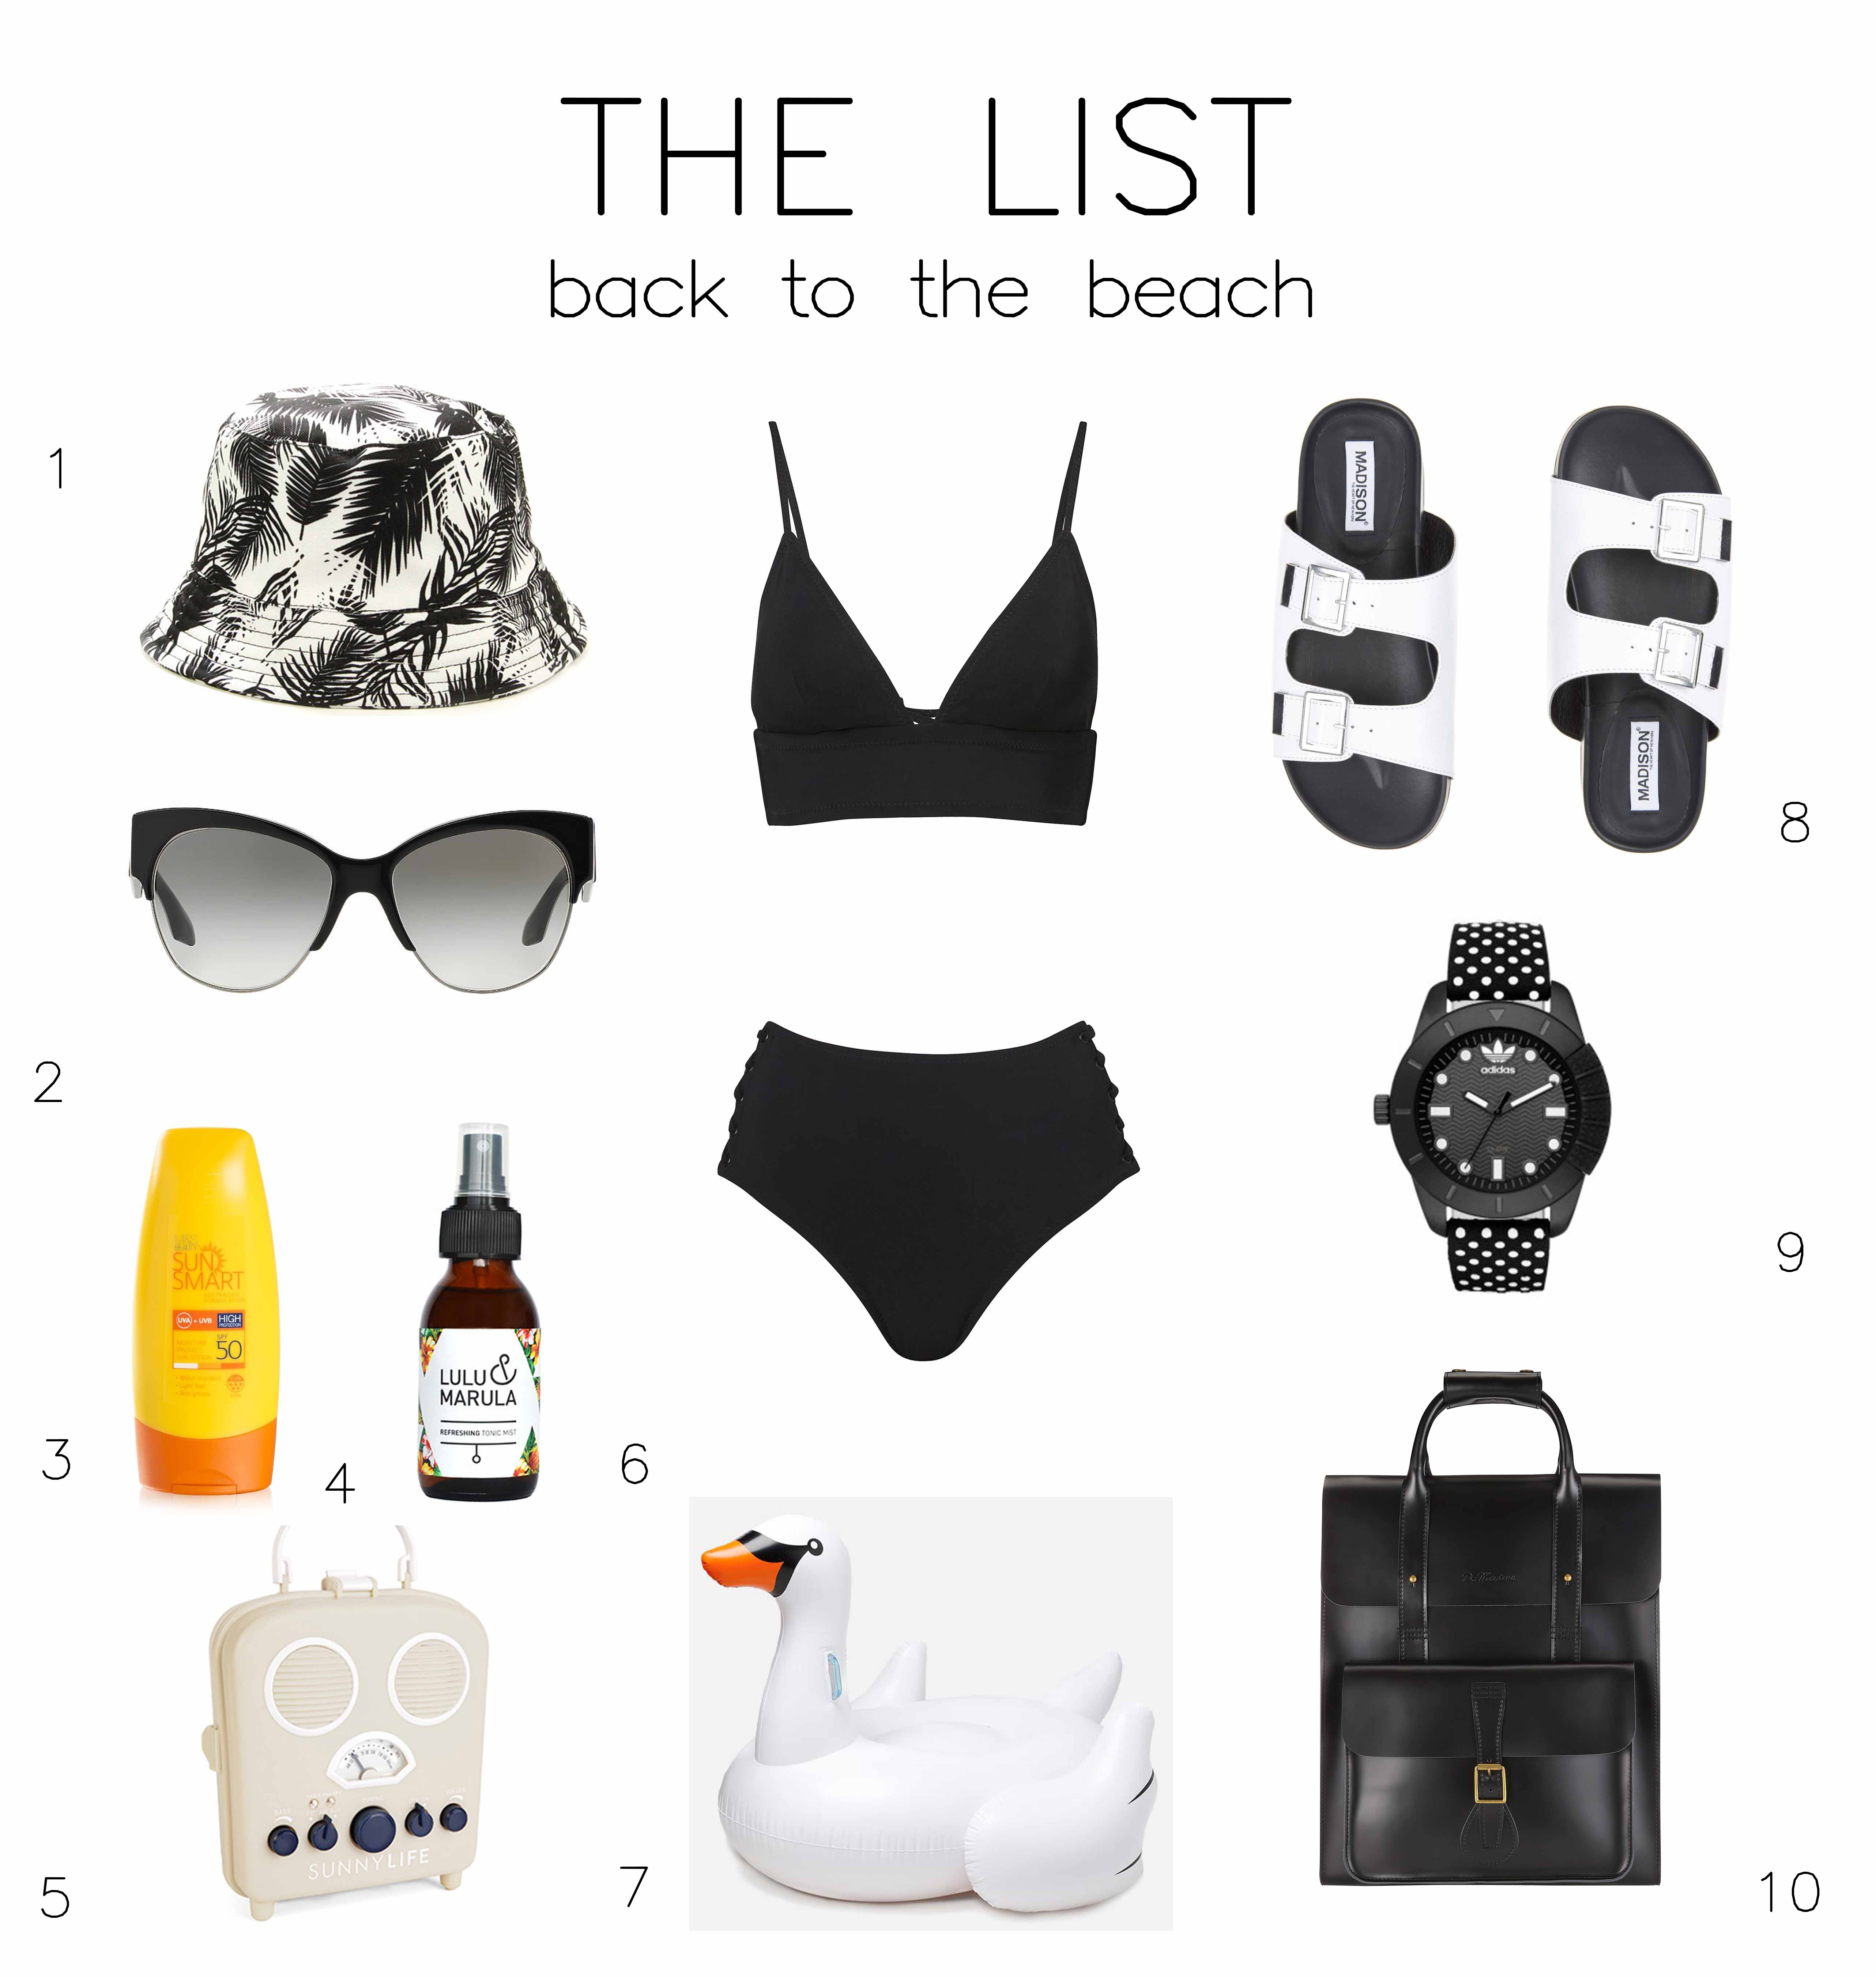 THE LIST Back to the Beach